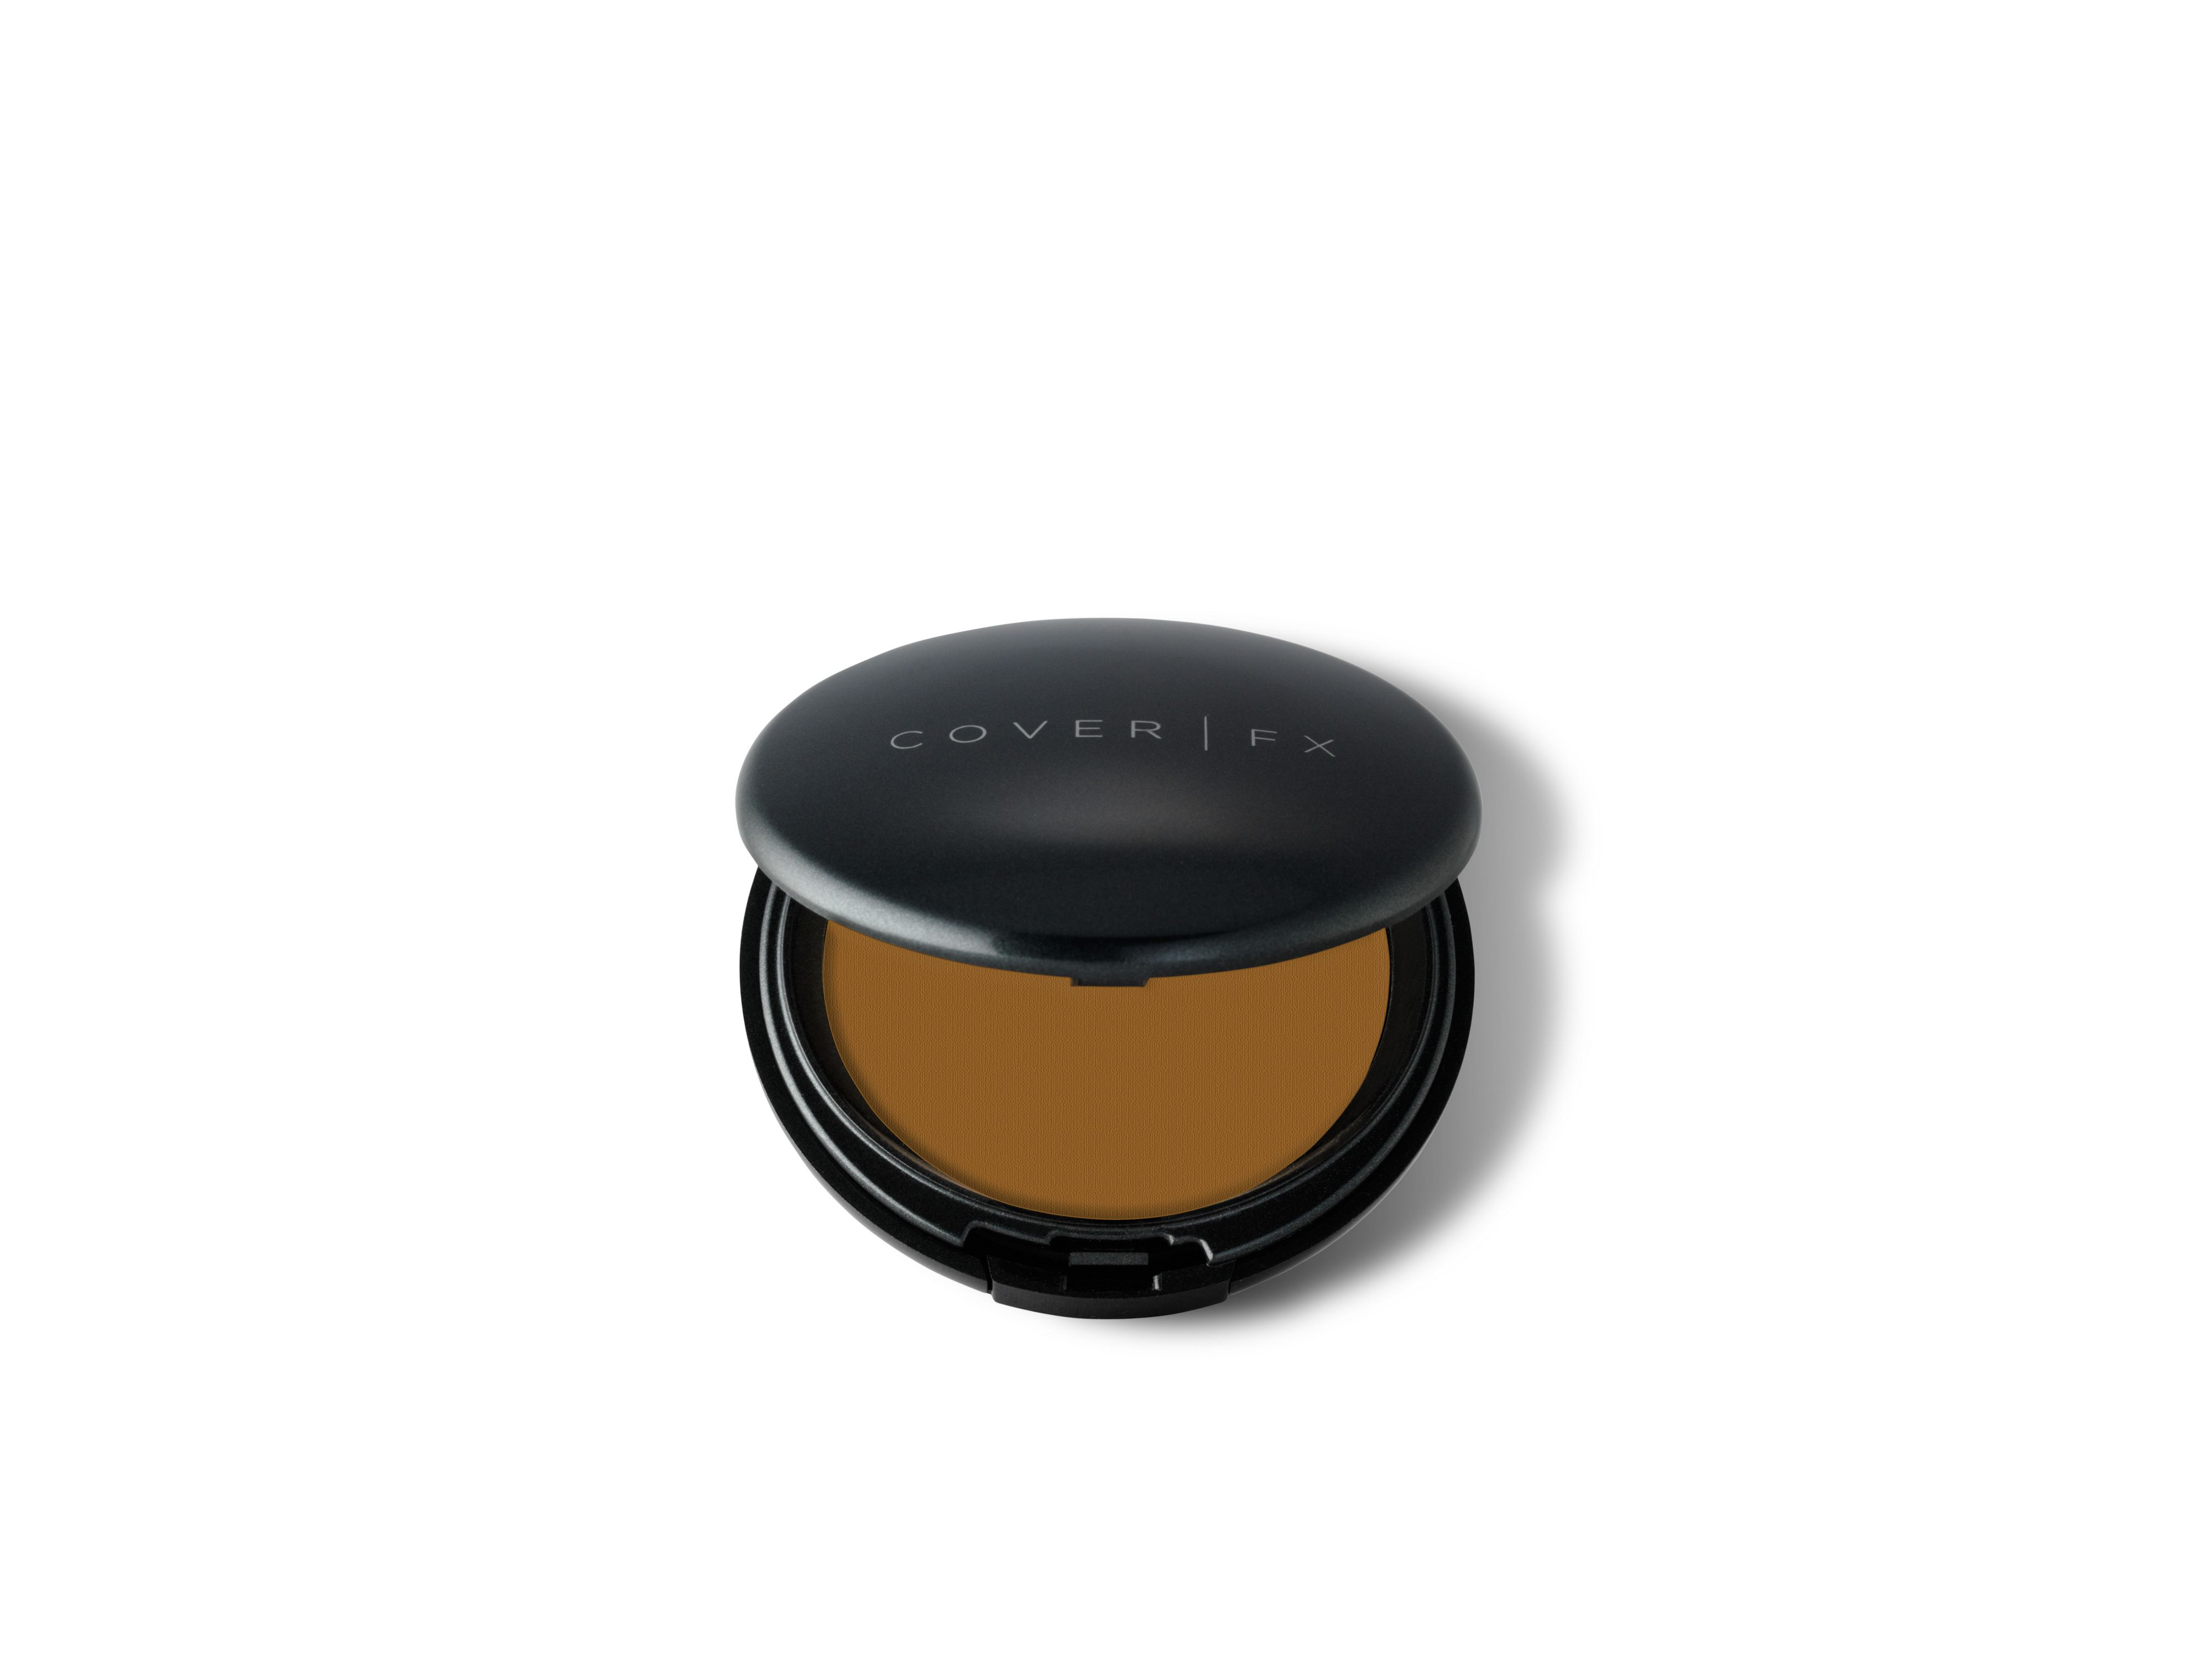 Cover FX Cover FX Pressed Mineral Foundation, G110